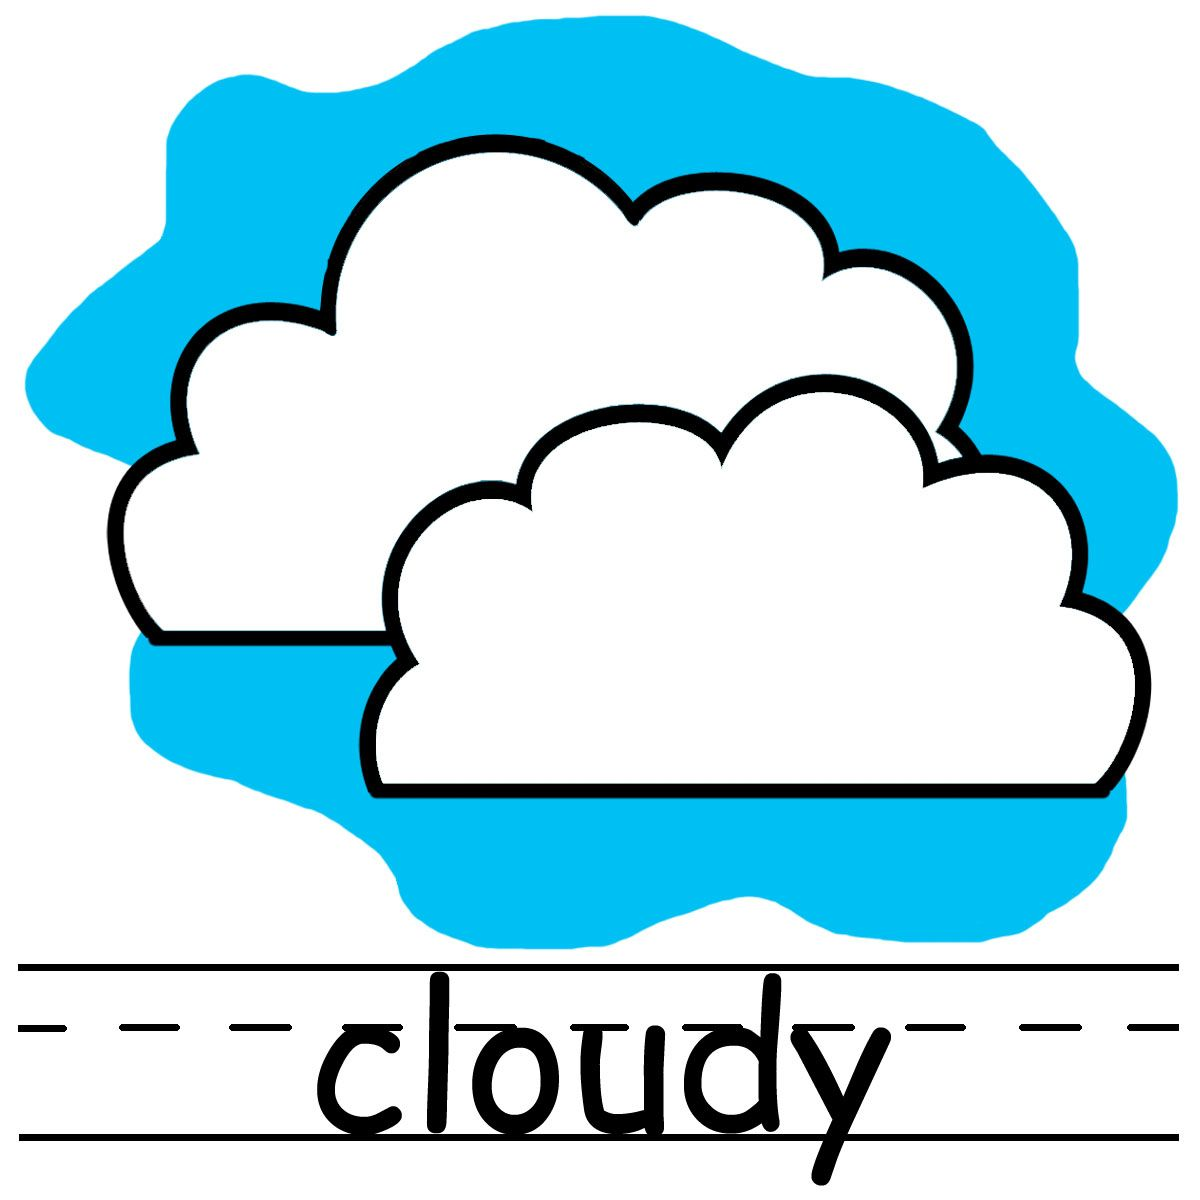 Cloudy clipart weather word. Pictures clip art icons